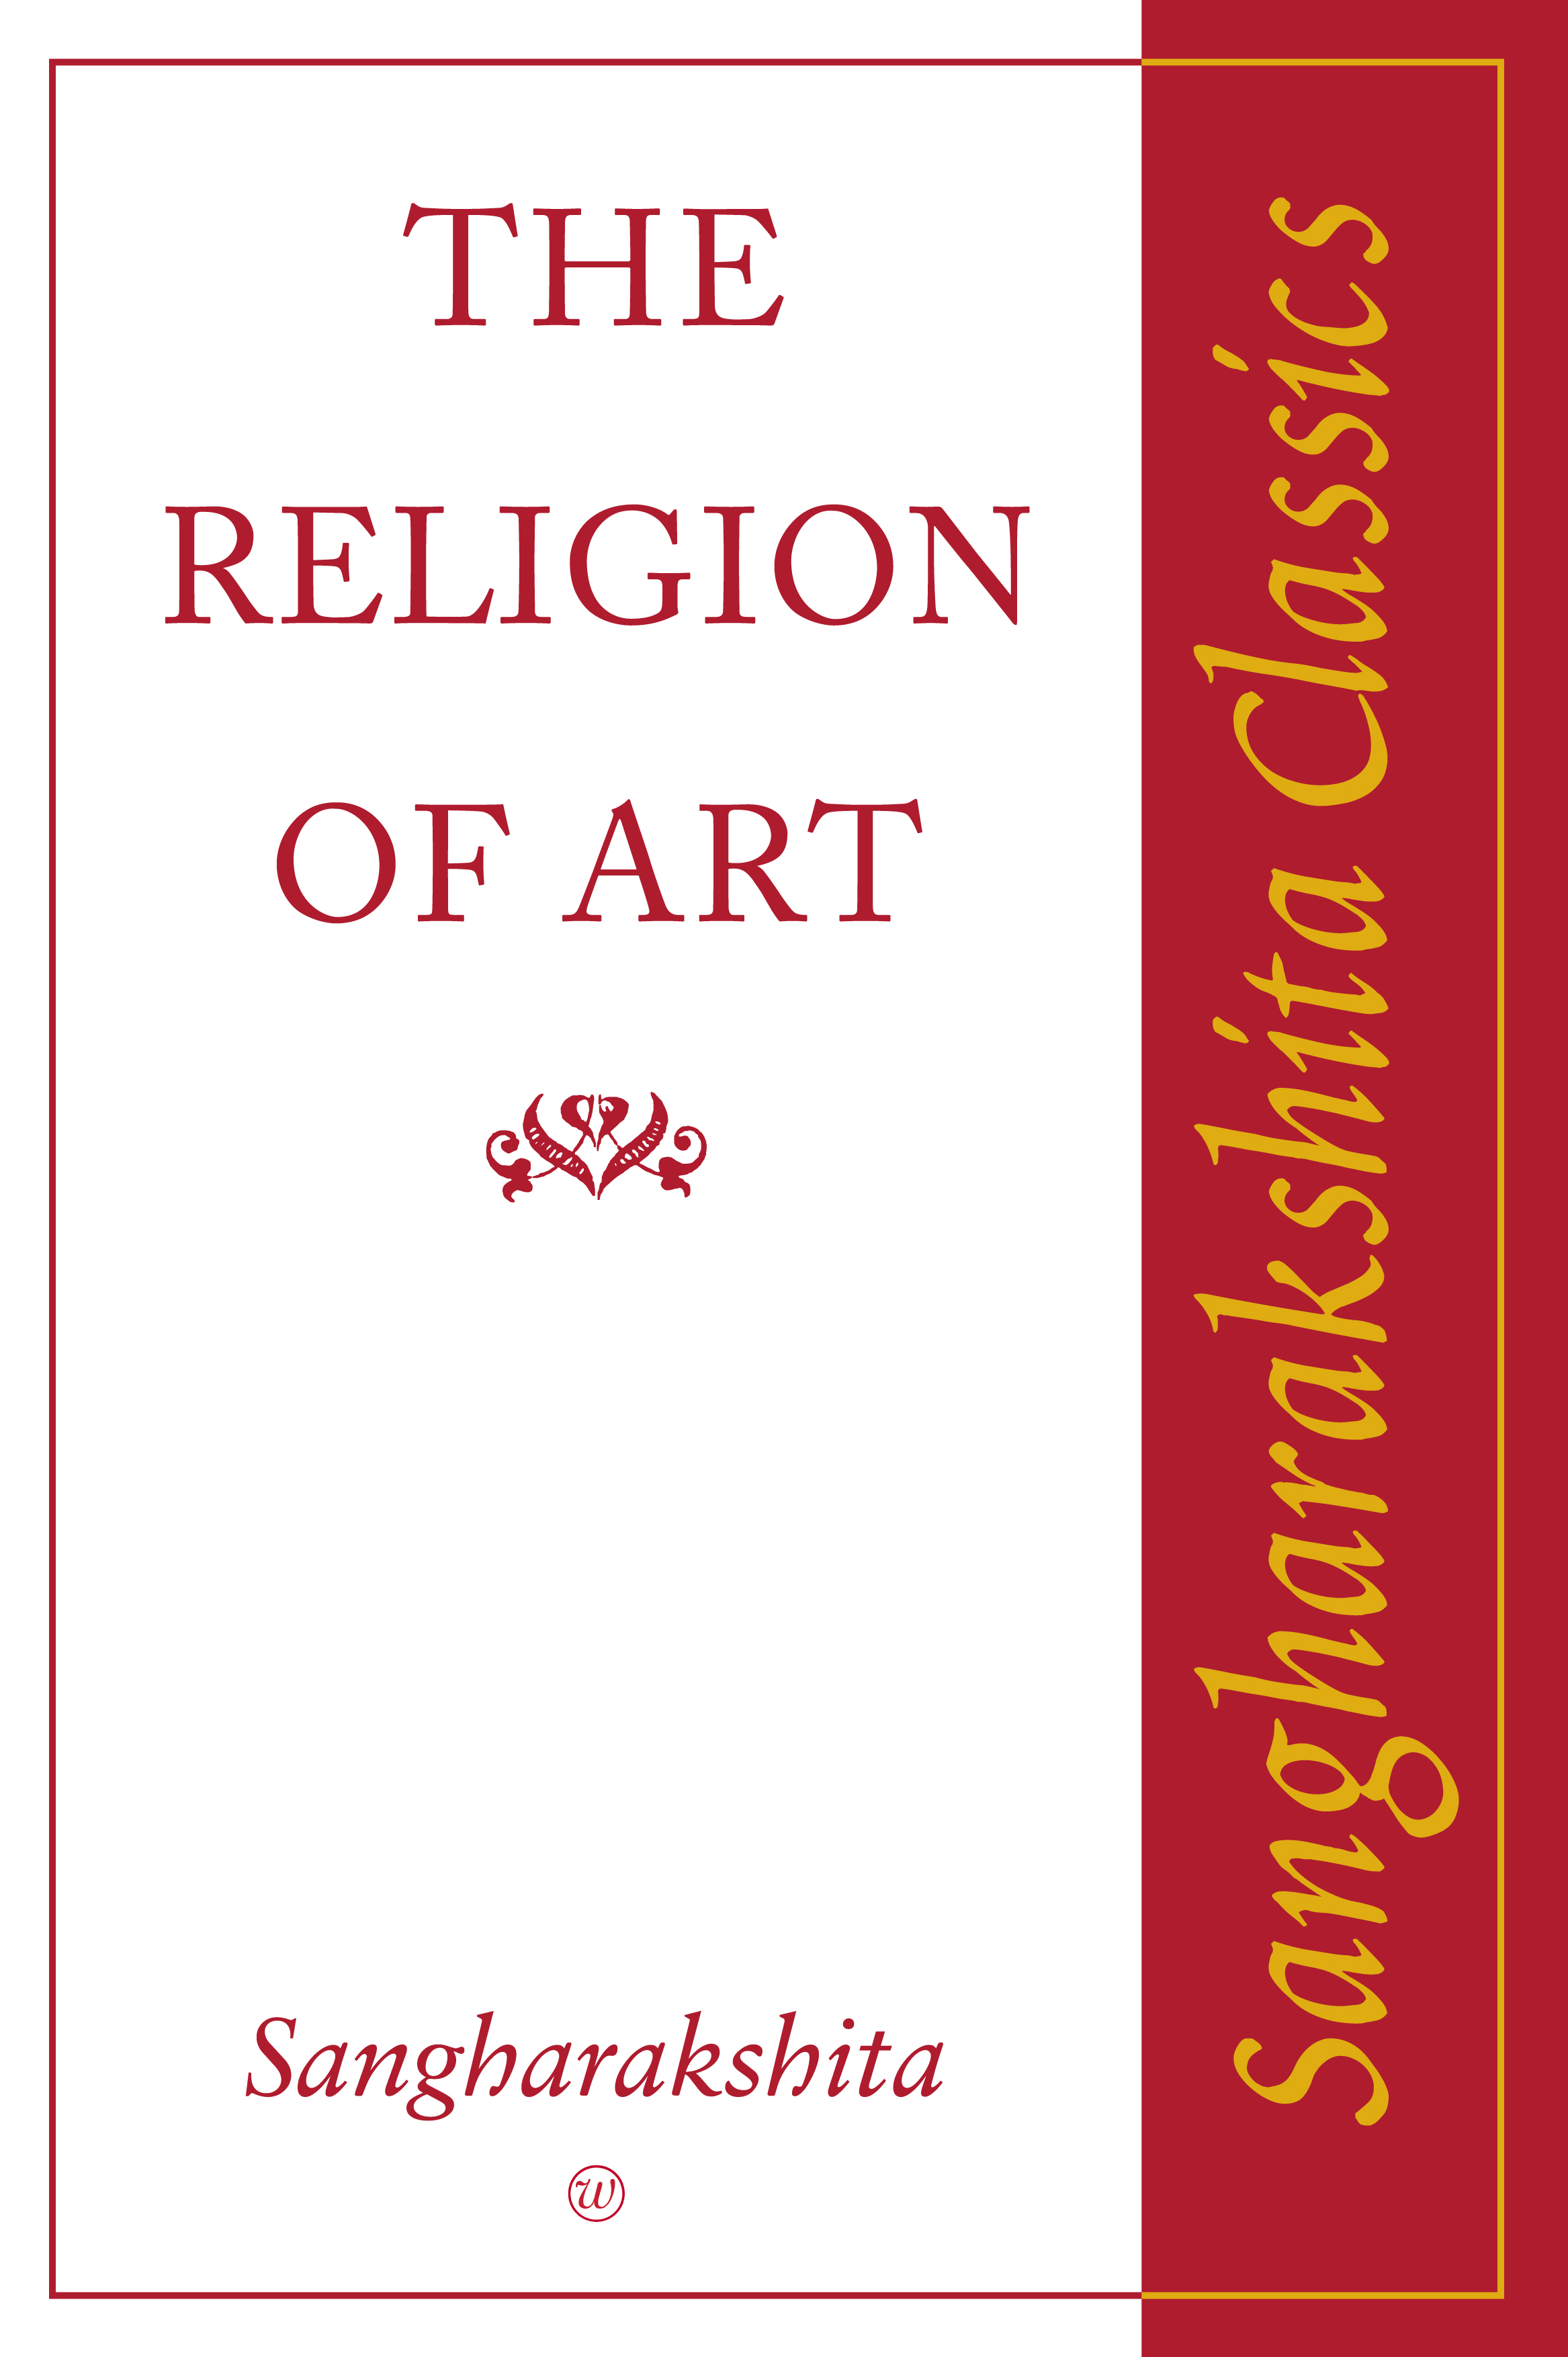 The Religion of Art